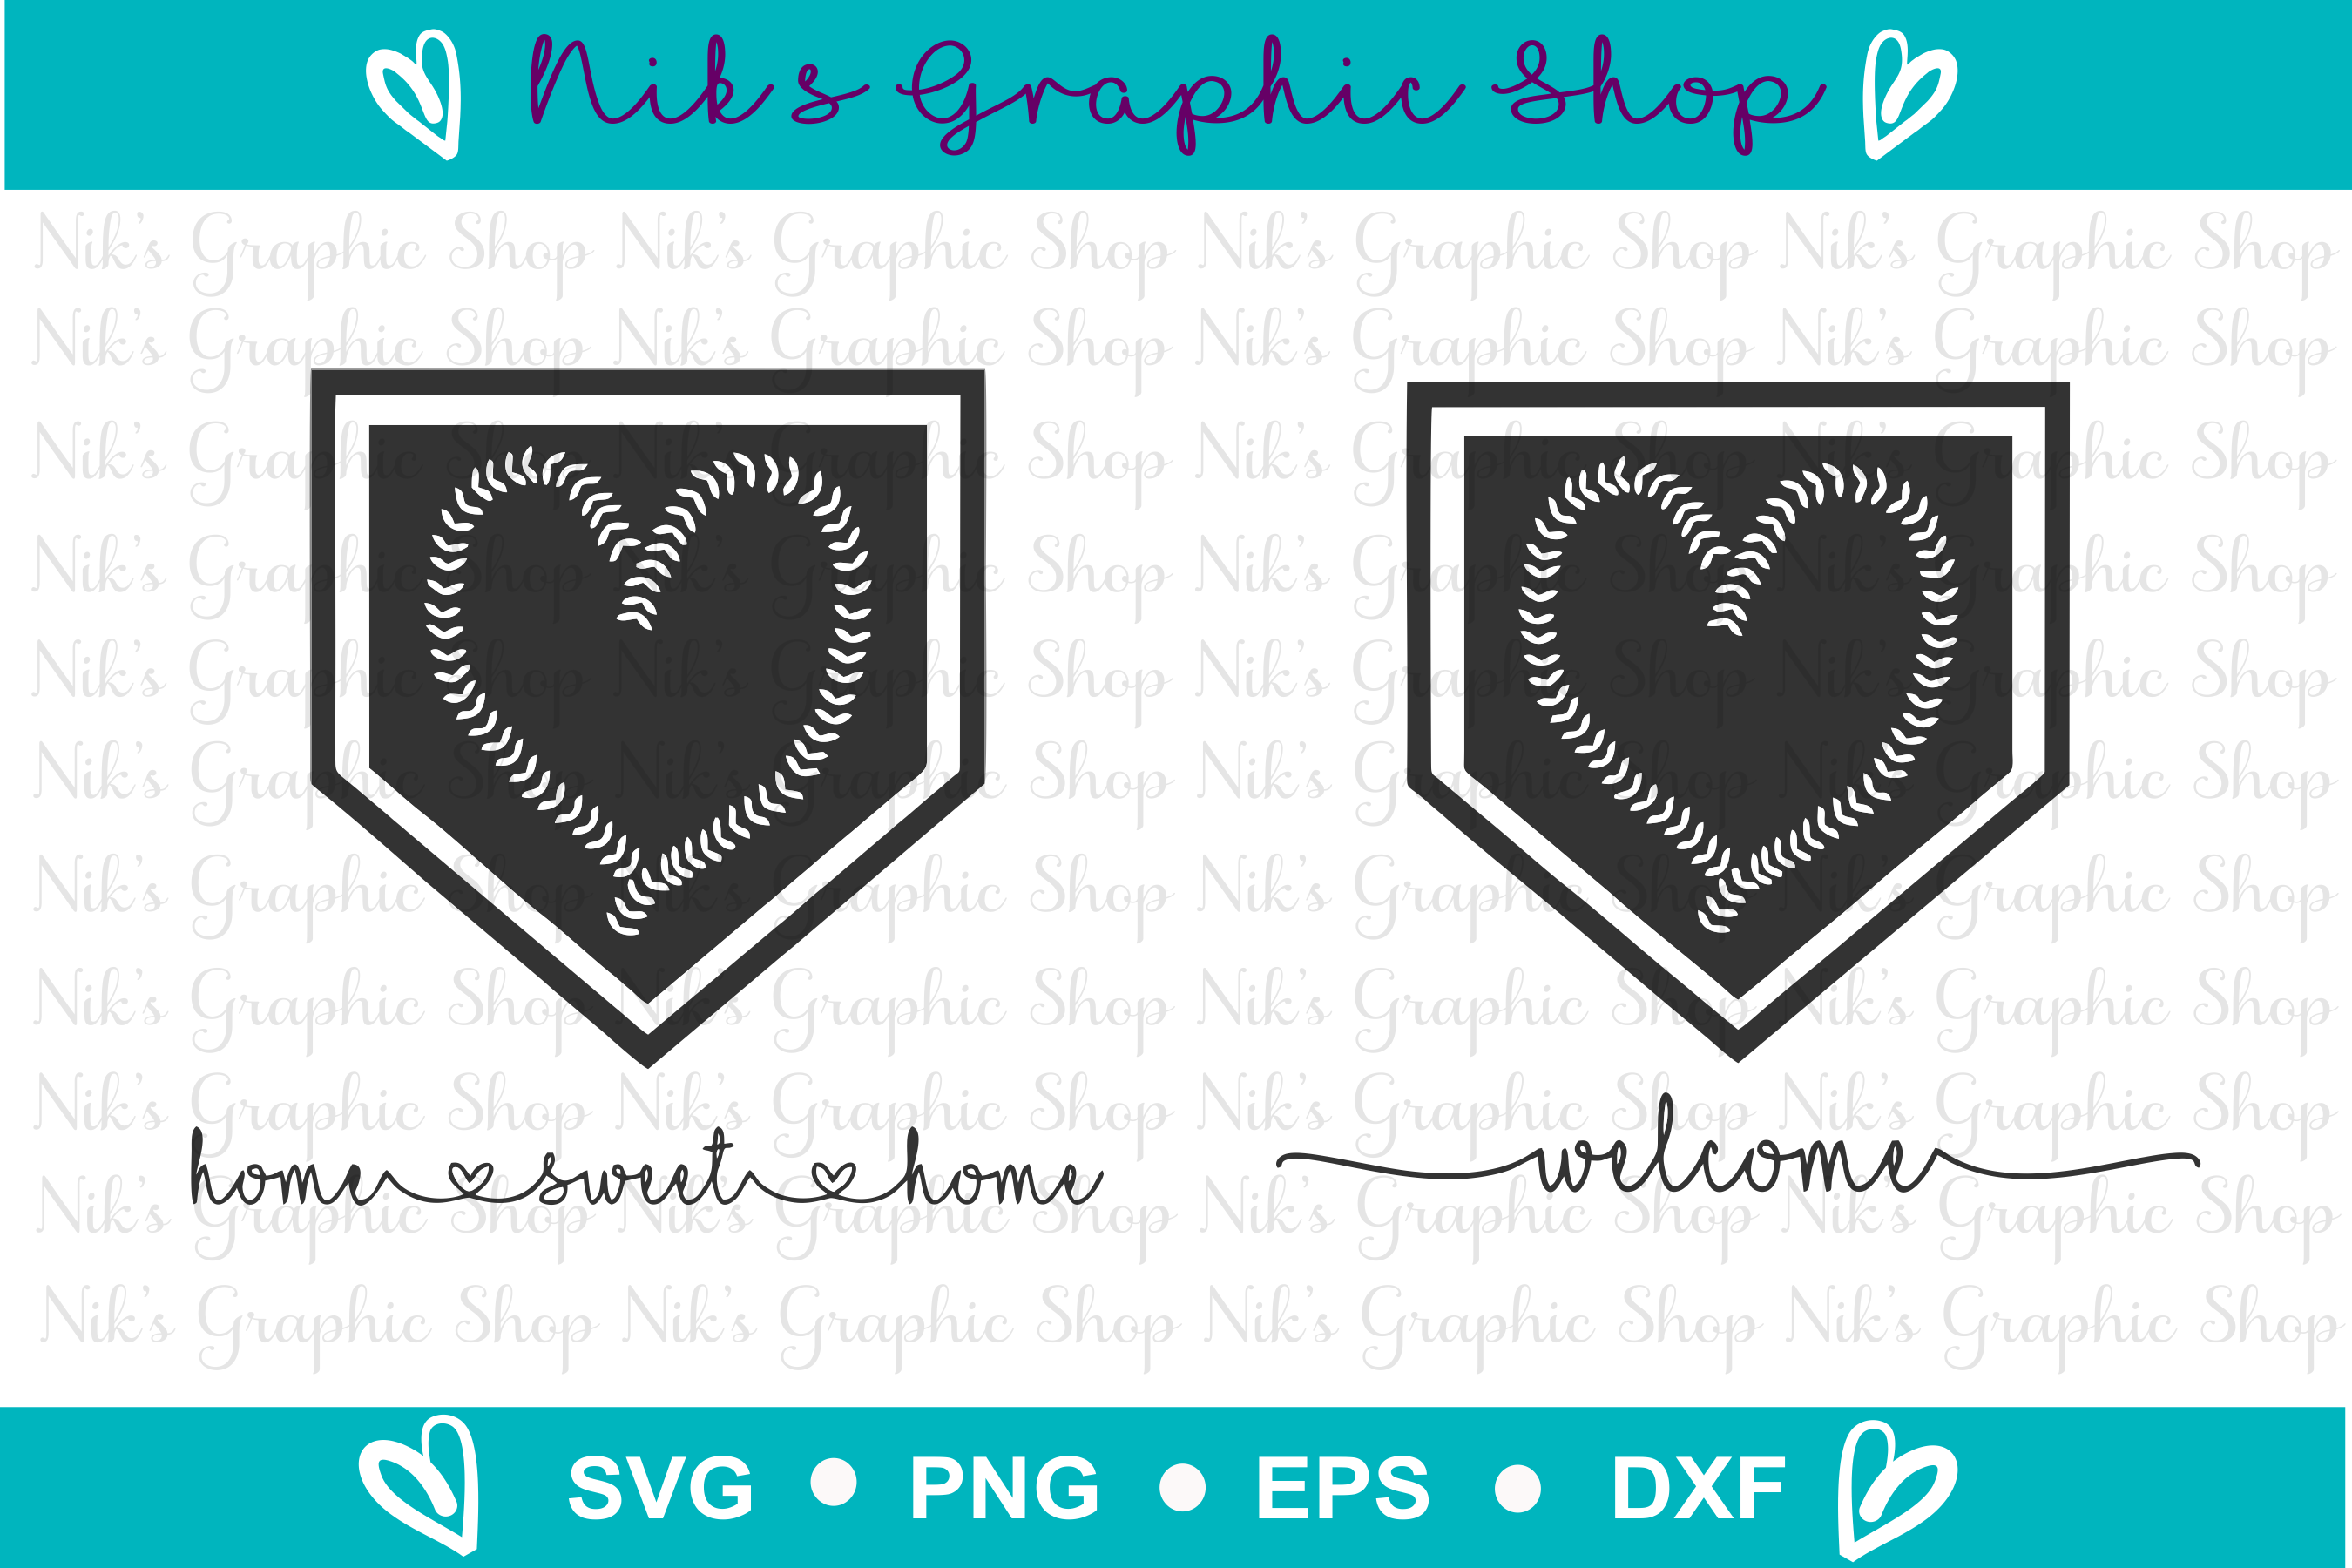 Baseball Svg, Home Sign Svg, Home Svg, Baseball Home Svg example image 3